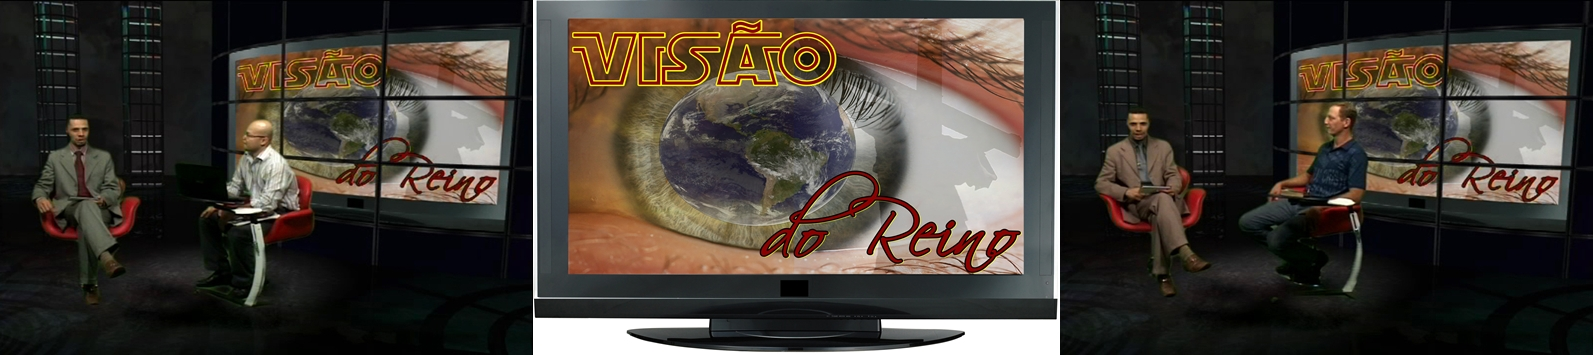 Assistir Plenitude do Trono de Deus ao vivo